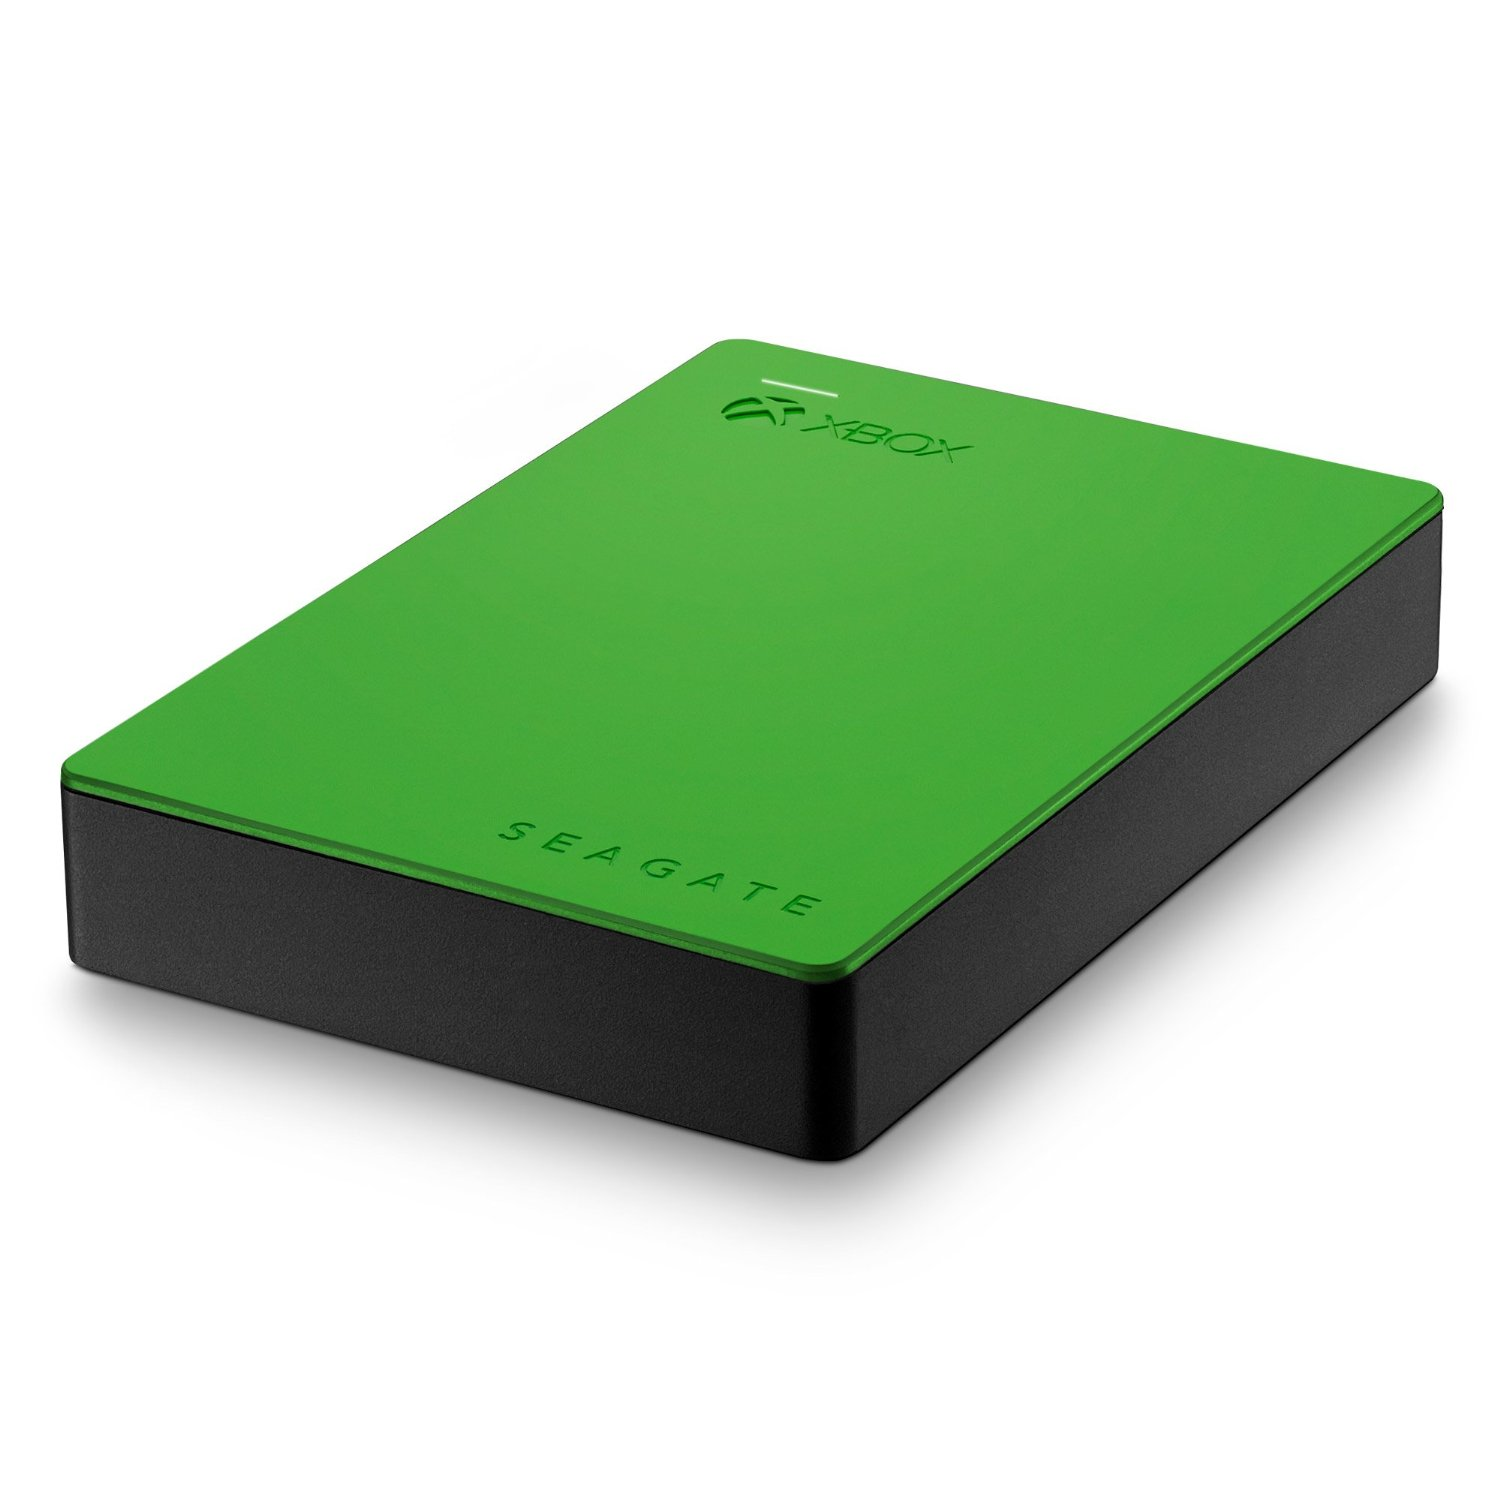 A Look At The New 4 TB Version Of The Xbox Game Drive Game Idealist